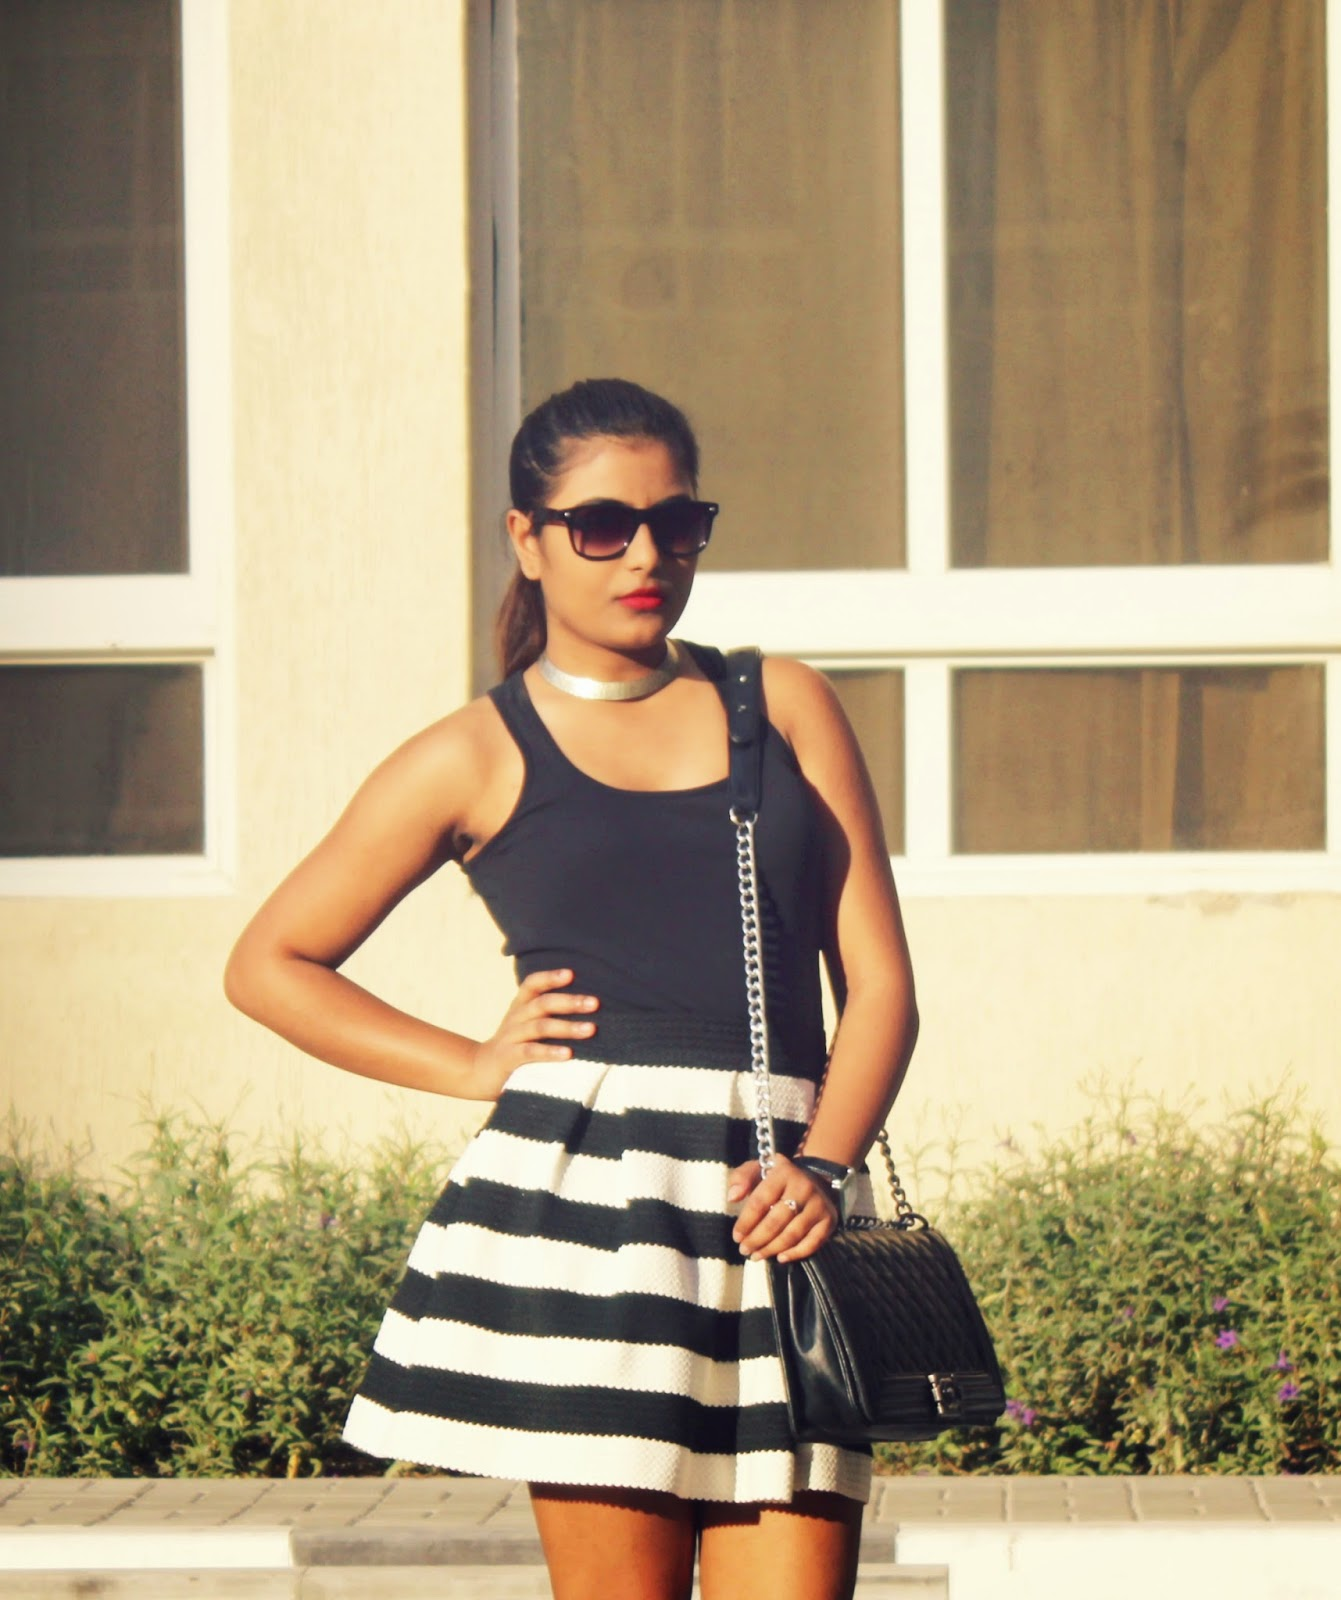 kajol paul, fashion blogger, dubai fashion blogger, style blogger, the style sorbet, fashion blog, dubai, style, fashion, street style, forever 21, skirt, heels, shoes, outfit, trend, chic, chanel, bag, outfit inspiration